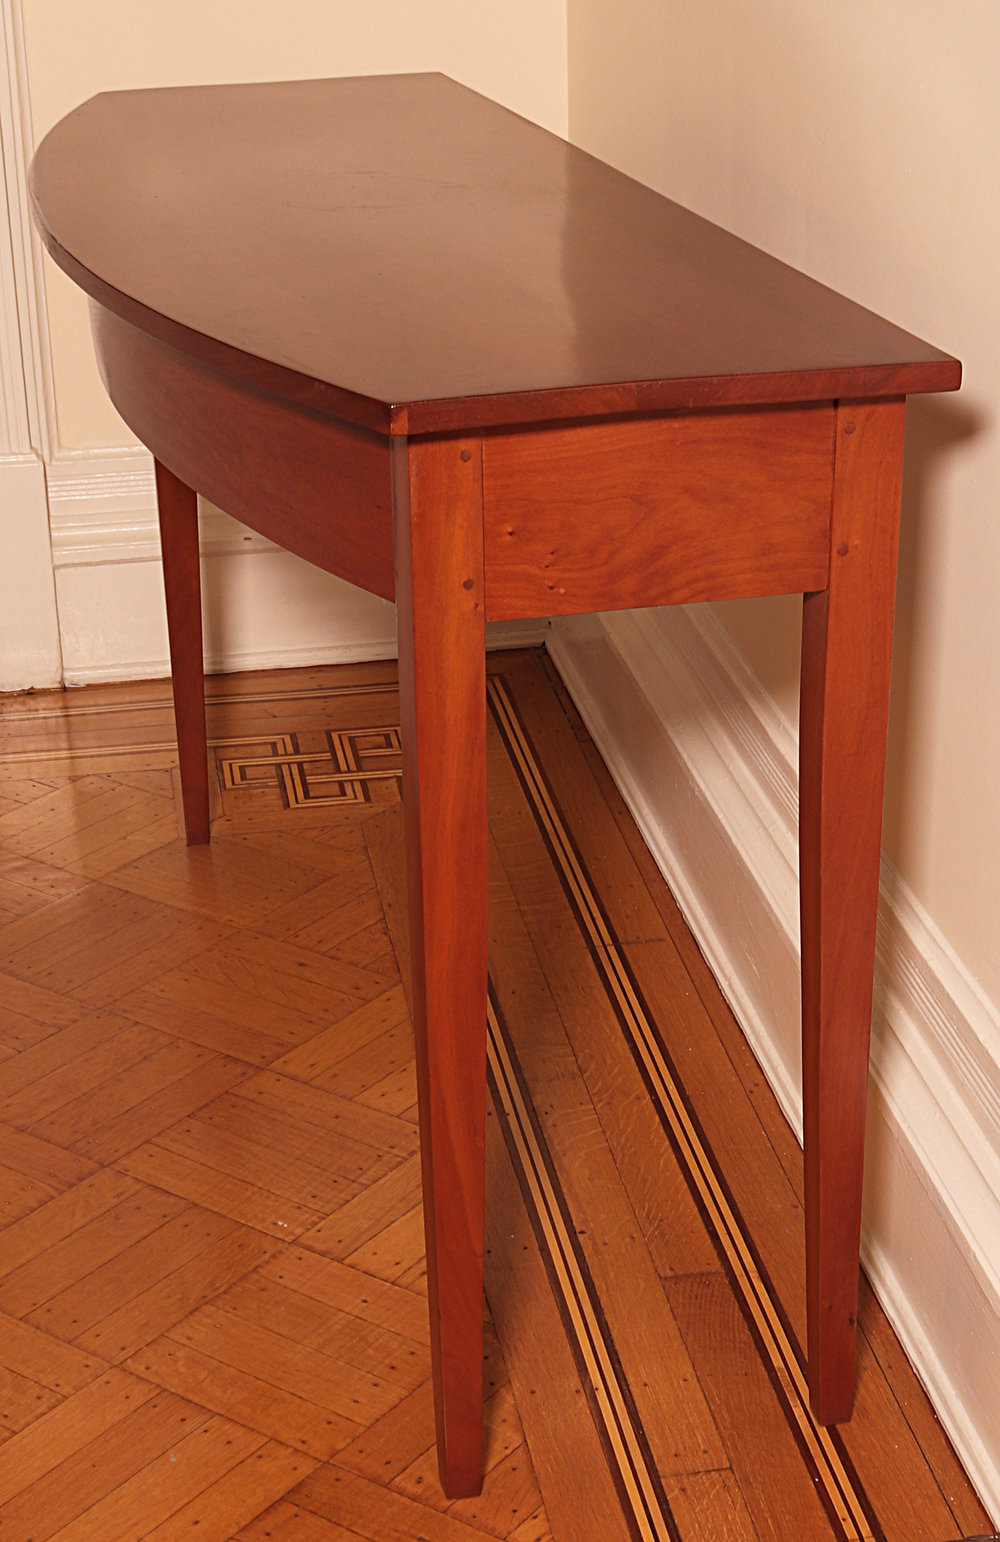 "Cherry Shaker Bowfront Table: 54"" long x 15"" wide x 30"" high"